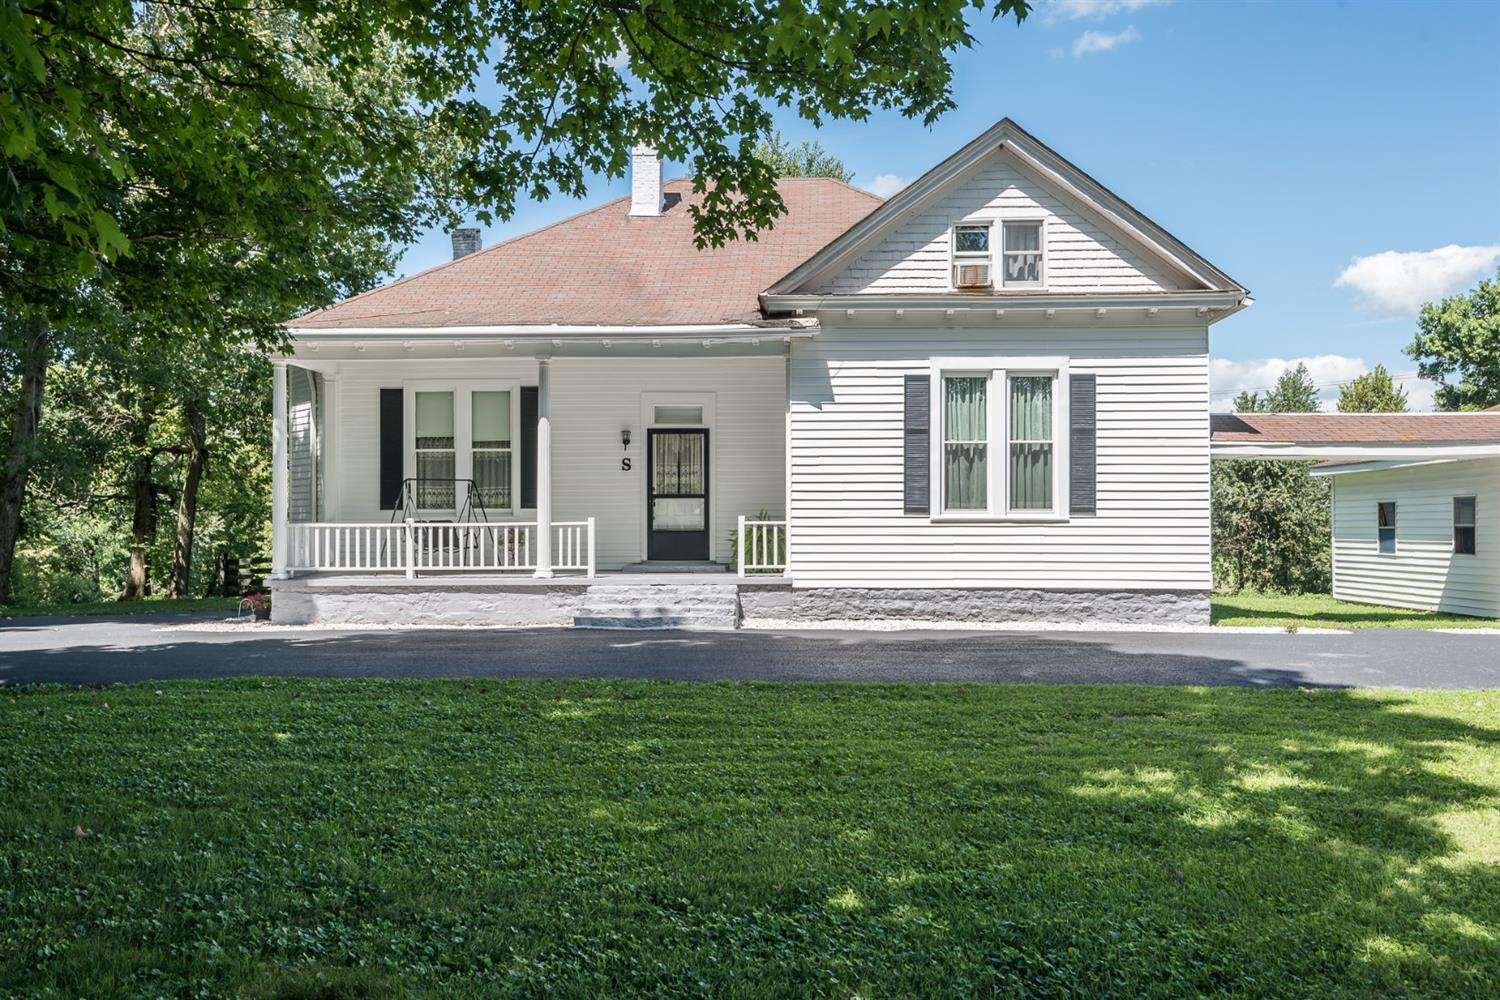 Wow!%20Look%20at%20the%20charm%20and%20appeal%20this%20farm%20house%20on%206%20acres%20has%20to%20offer!%204%20bedrooms%20-%20could%20be%20more%20depending%20on%20your%20needs,%203%20full%20baths,%205%20working%20%20fireplaces,%20hardwood%20floors,%20tons%20of%20storage!%20Enjoy%20beautiful%20views,%20even%20rainy%20days%20from%20the%20covered%20porch%20and%20let%20the%20sounds%20of%20summer%20lull%20you%20to%20sleep%20%20in%20your%20hammock%20on%20cool%20nights.%20Plenty%20of%20room%20for%20a%20couple%20of%20horses,%20raise%20your%20own%20gardens%20and%20let%20the%20kids%20roam.%20Country%20living%20just%20minutes%20from%20town,%20%20schools,%20shopping,%20churches!